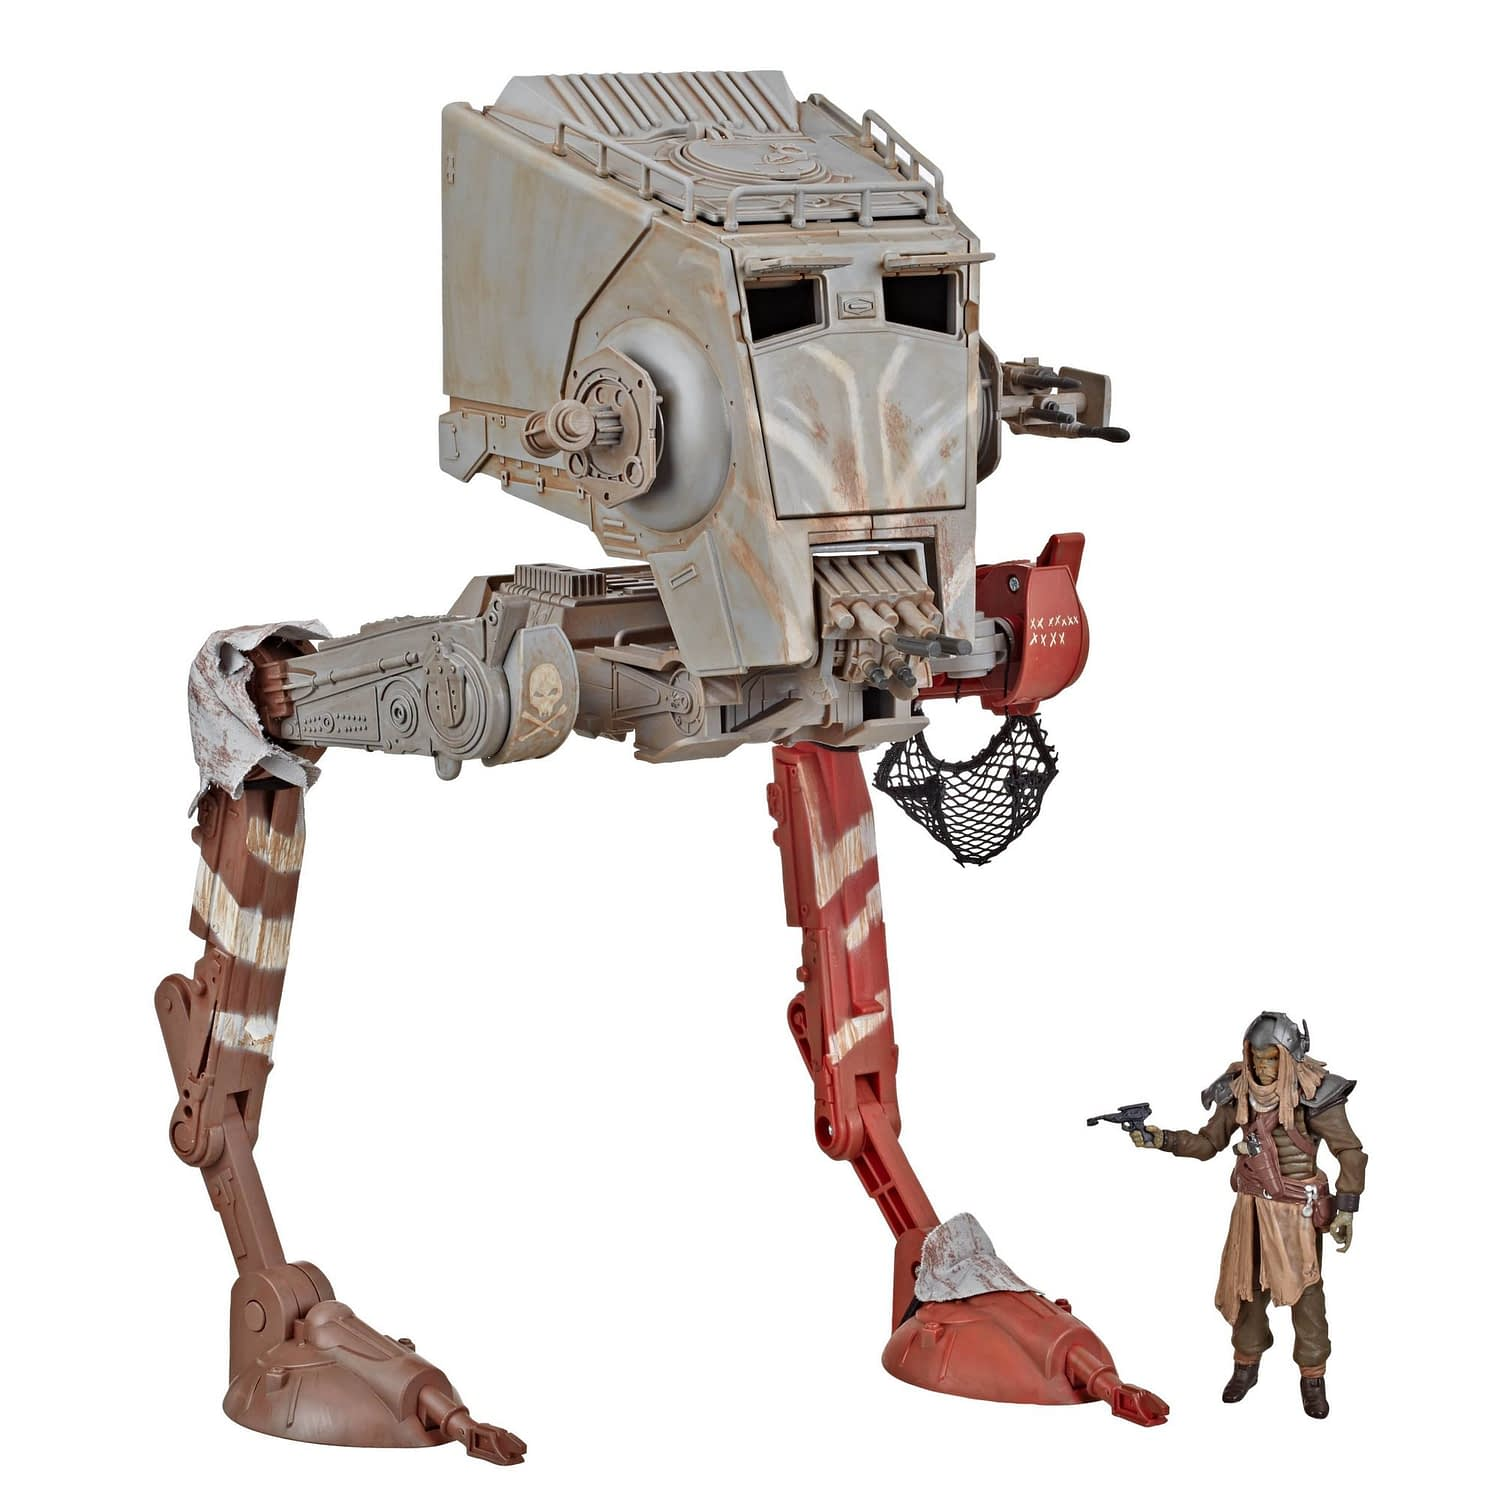 New Star Wars Vehicles Are Getting the Vintage Treatment